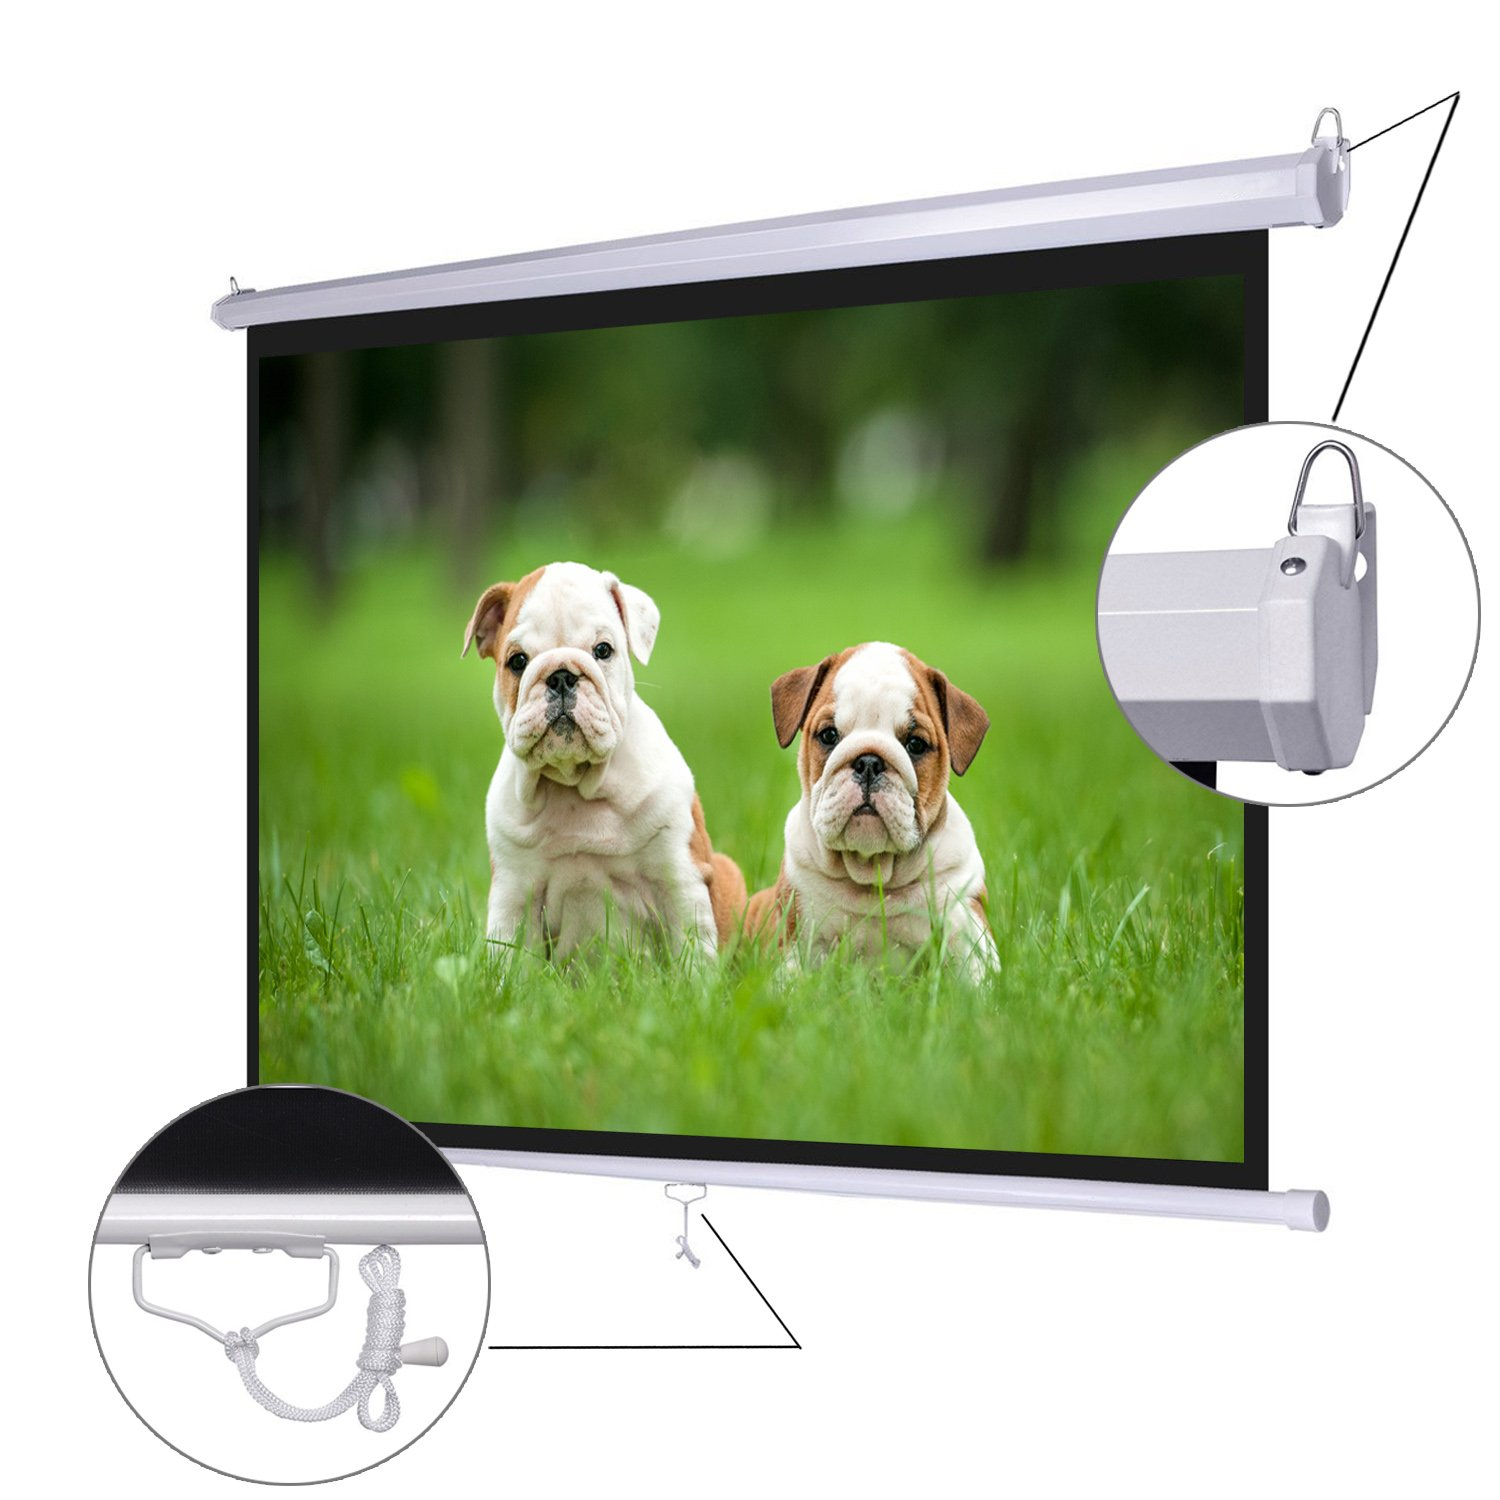 Koval Inc. 72'' Diagonal 4:3 Manual Pull Down Wall Mount Matte Projector Screen (72'' 4:3) by KOVAL INC.